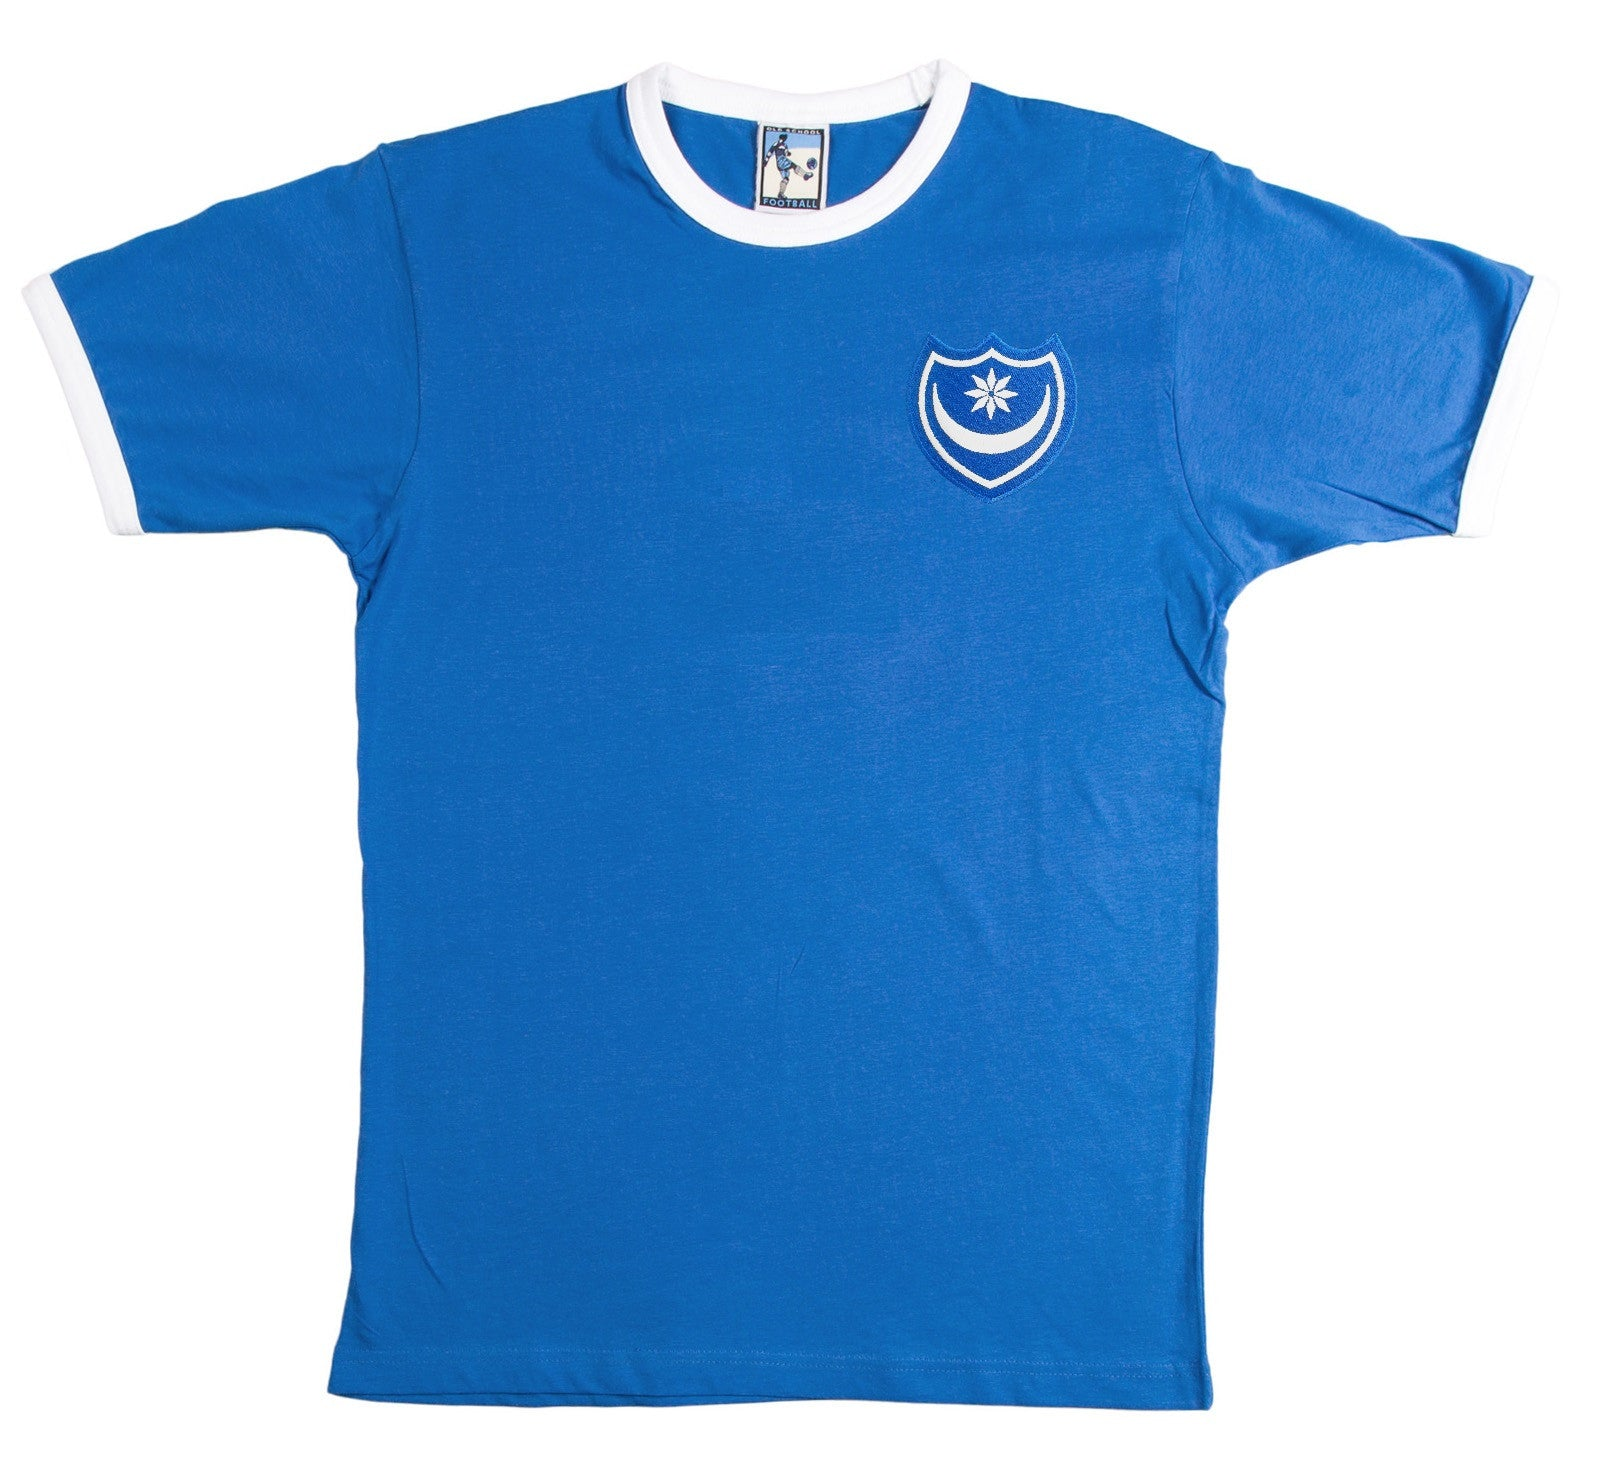 Portsmouth 1960s T-Shirt - Old School Football